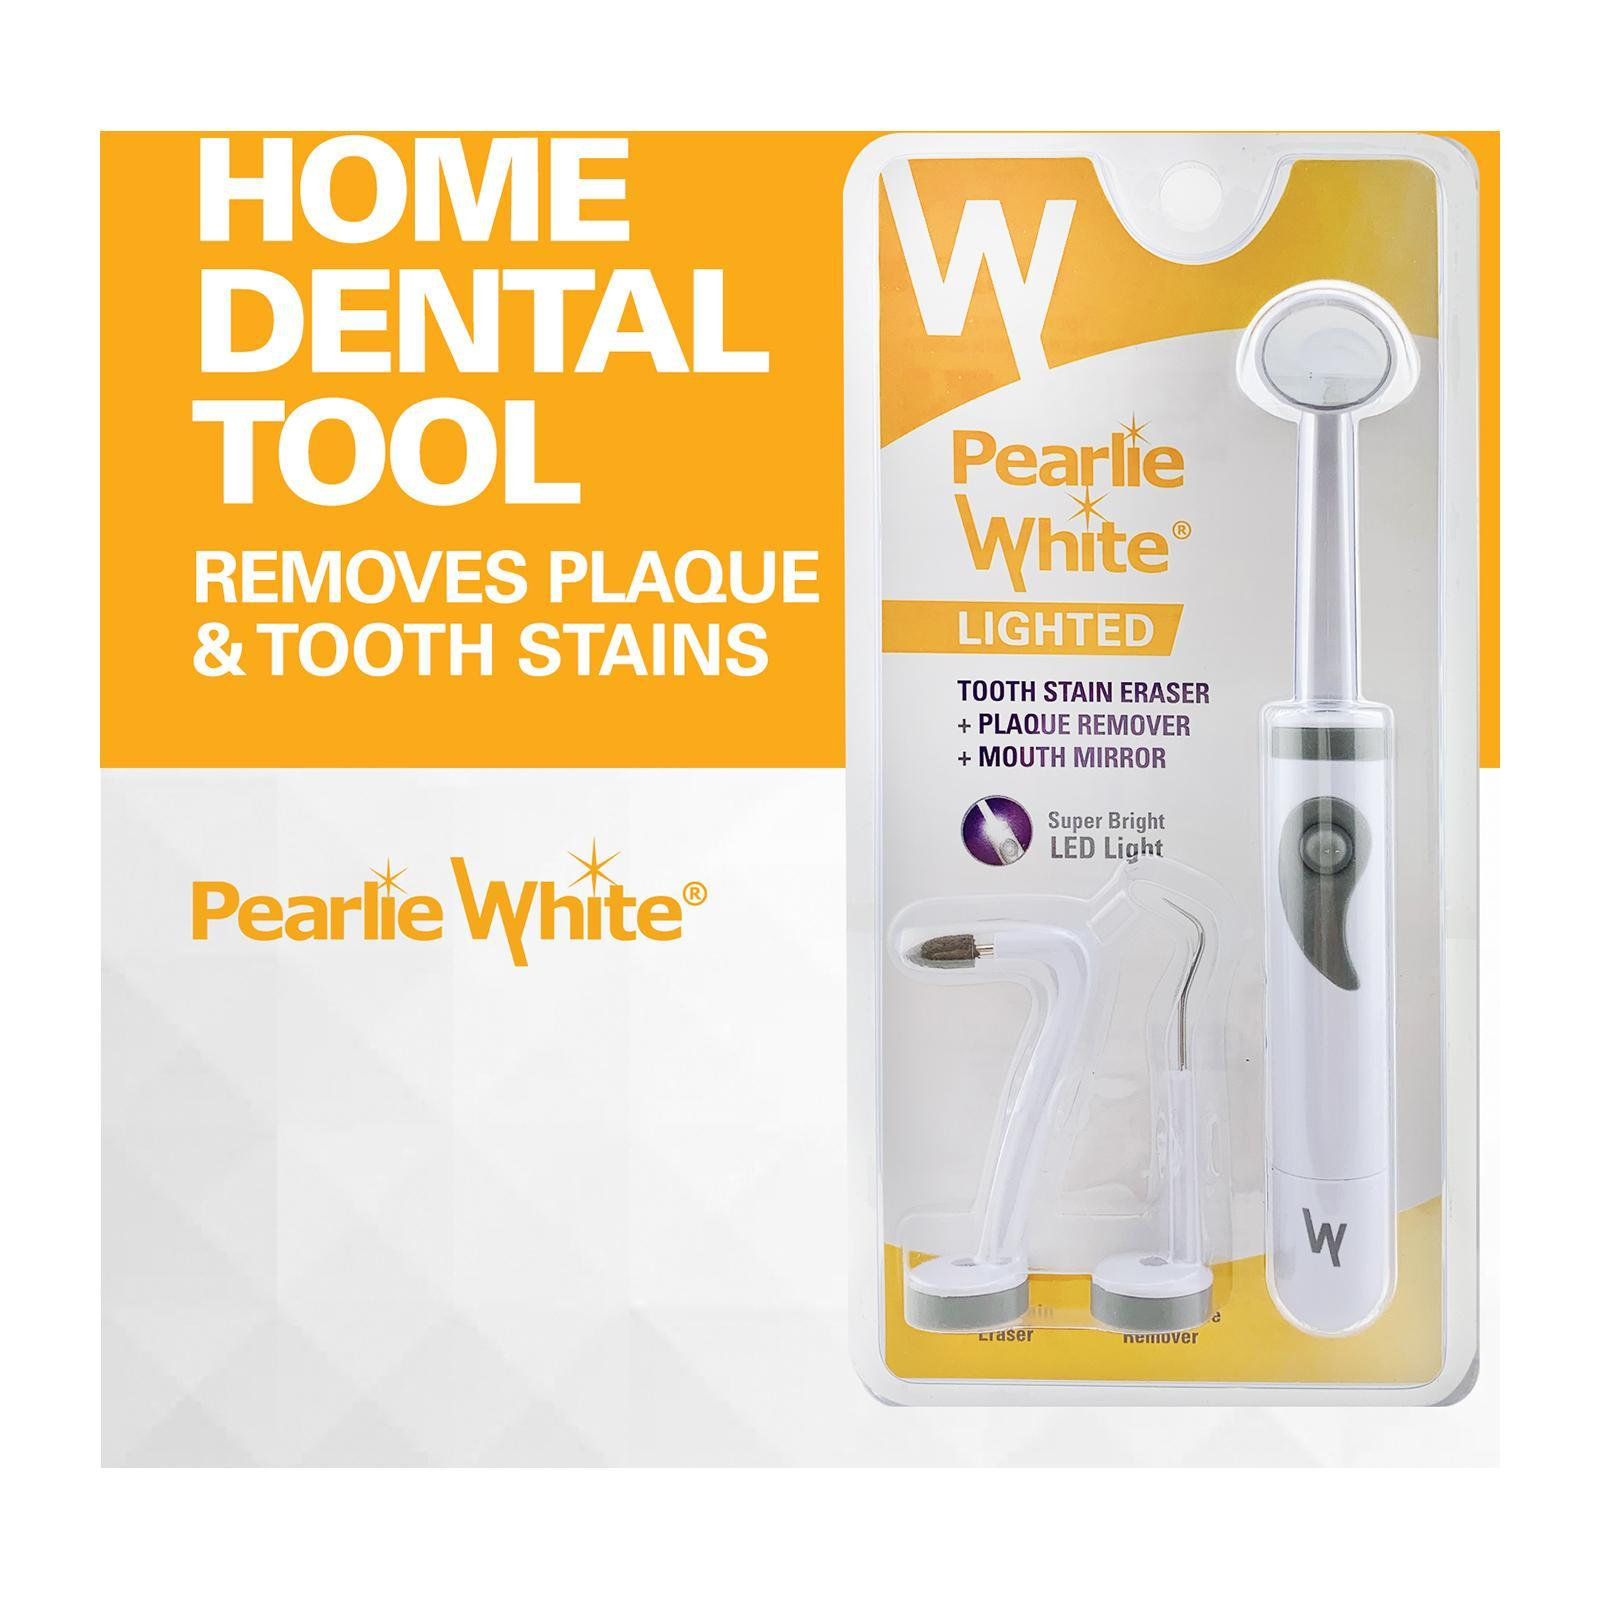 Pearlie White Lighted Tooth Stain Eraser + Plaque Remover + Mouth Mirror